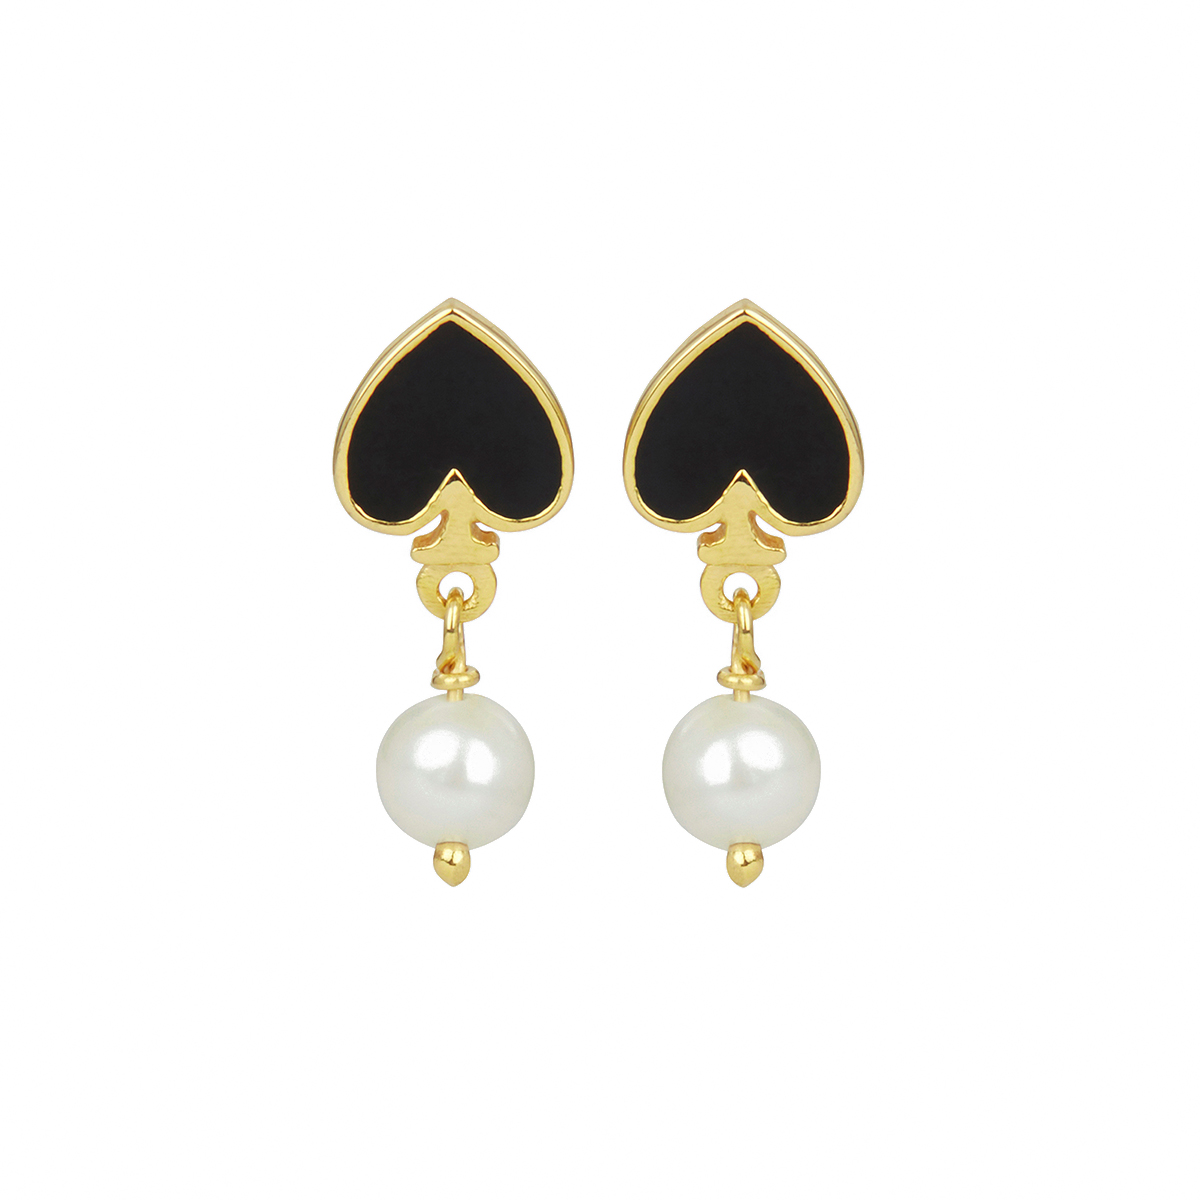 Black spade and pearl stud earrings by Ottoman Hands